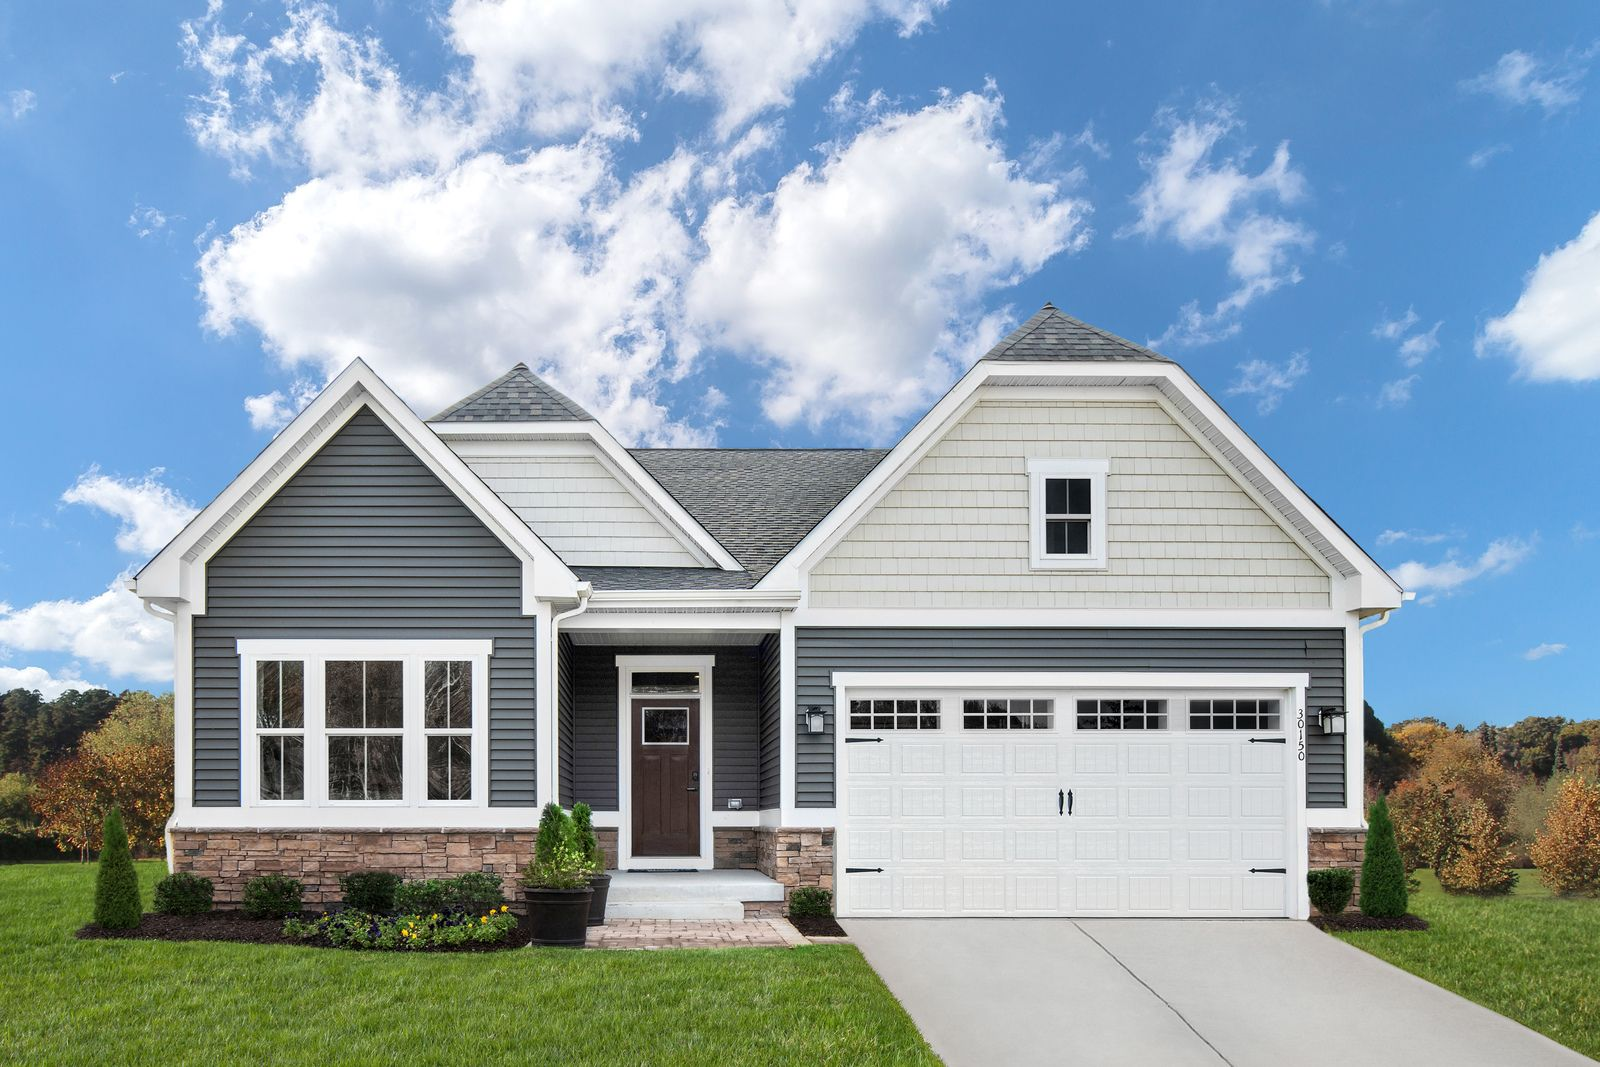 WELCOME TO BIG ELK 55+:The only new ranch homes offering stunning views and luxury features, with future pool and clubhouse, just minutes from Longwood Gardens and Route 1.Click here to schedule a visit!